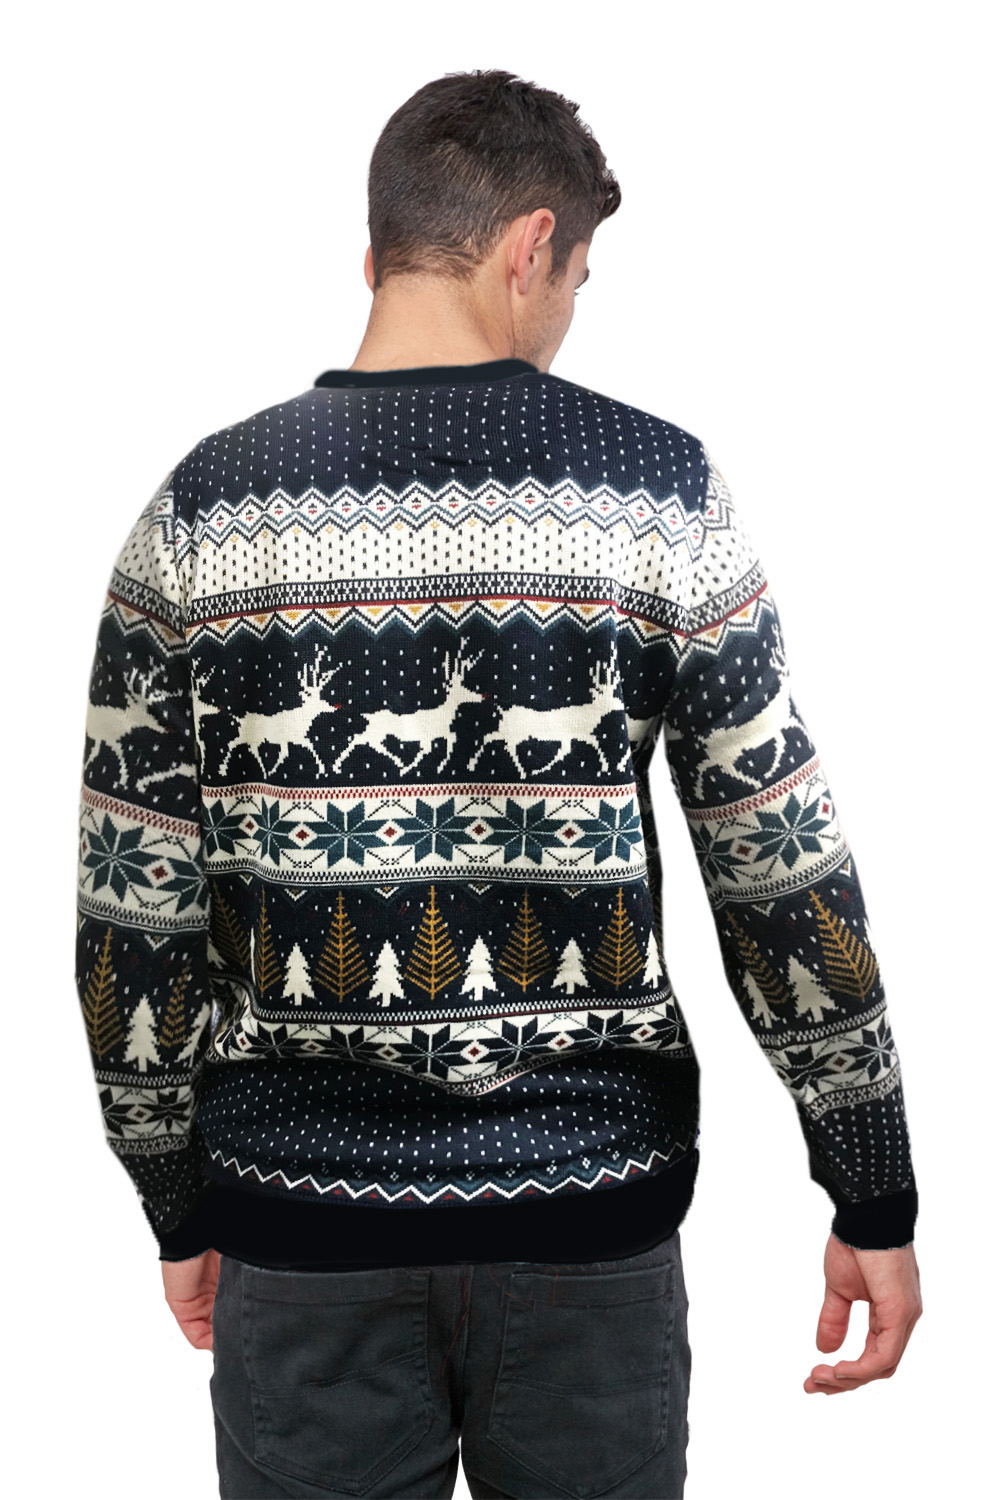 Seasons-Greetings-Mens-Reindeer-Fairisle-With-Lights-Festive-Christmas-Jumper thumbnail 3